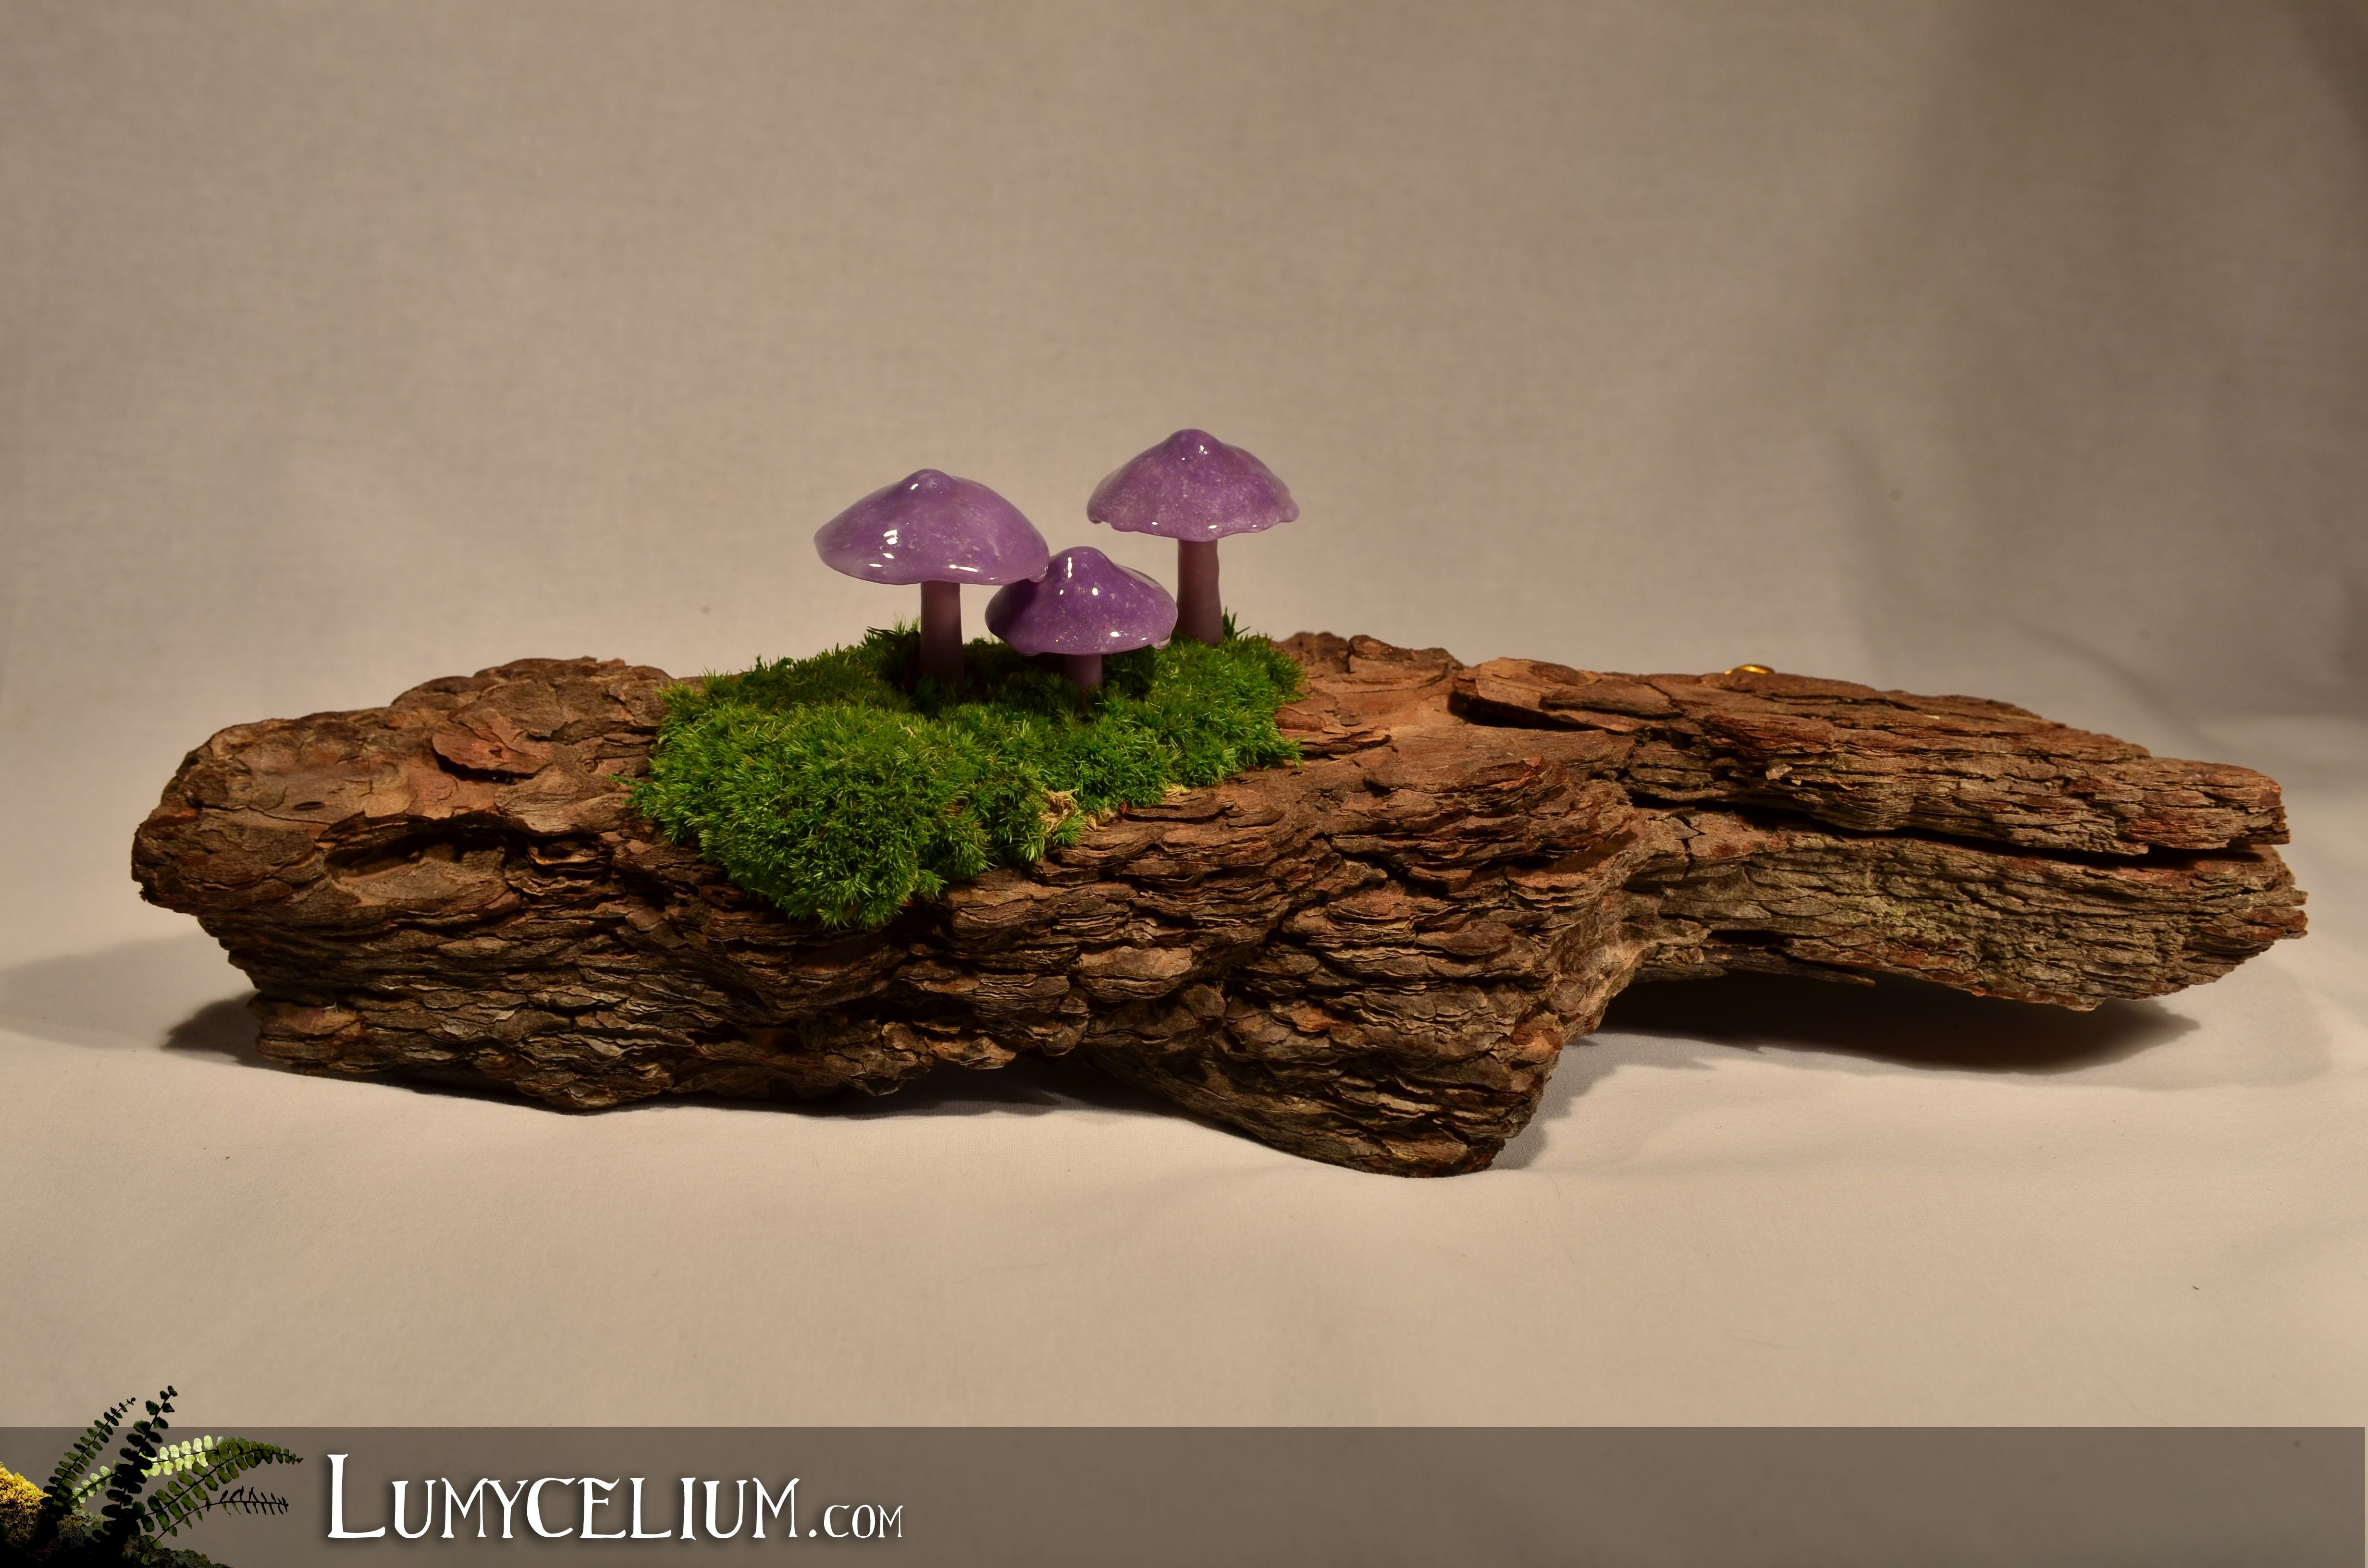 lumycelium tripod petits champignons violets led sur corce d 39 arbre et mousse v g tale. Black Bedroom Furniture Sets. Home Design Ideas